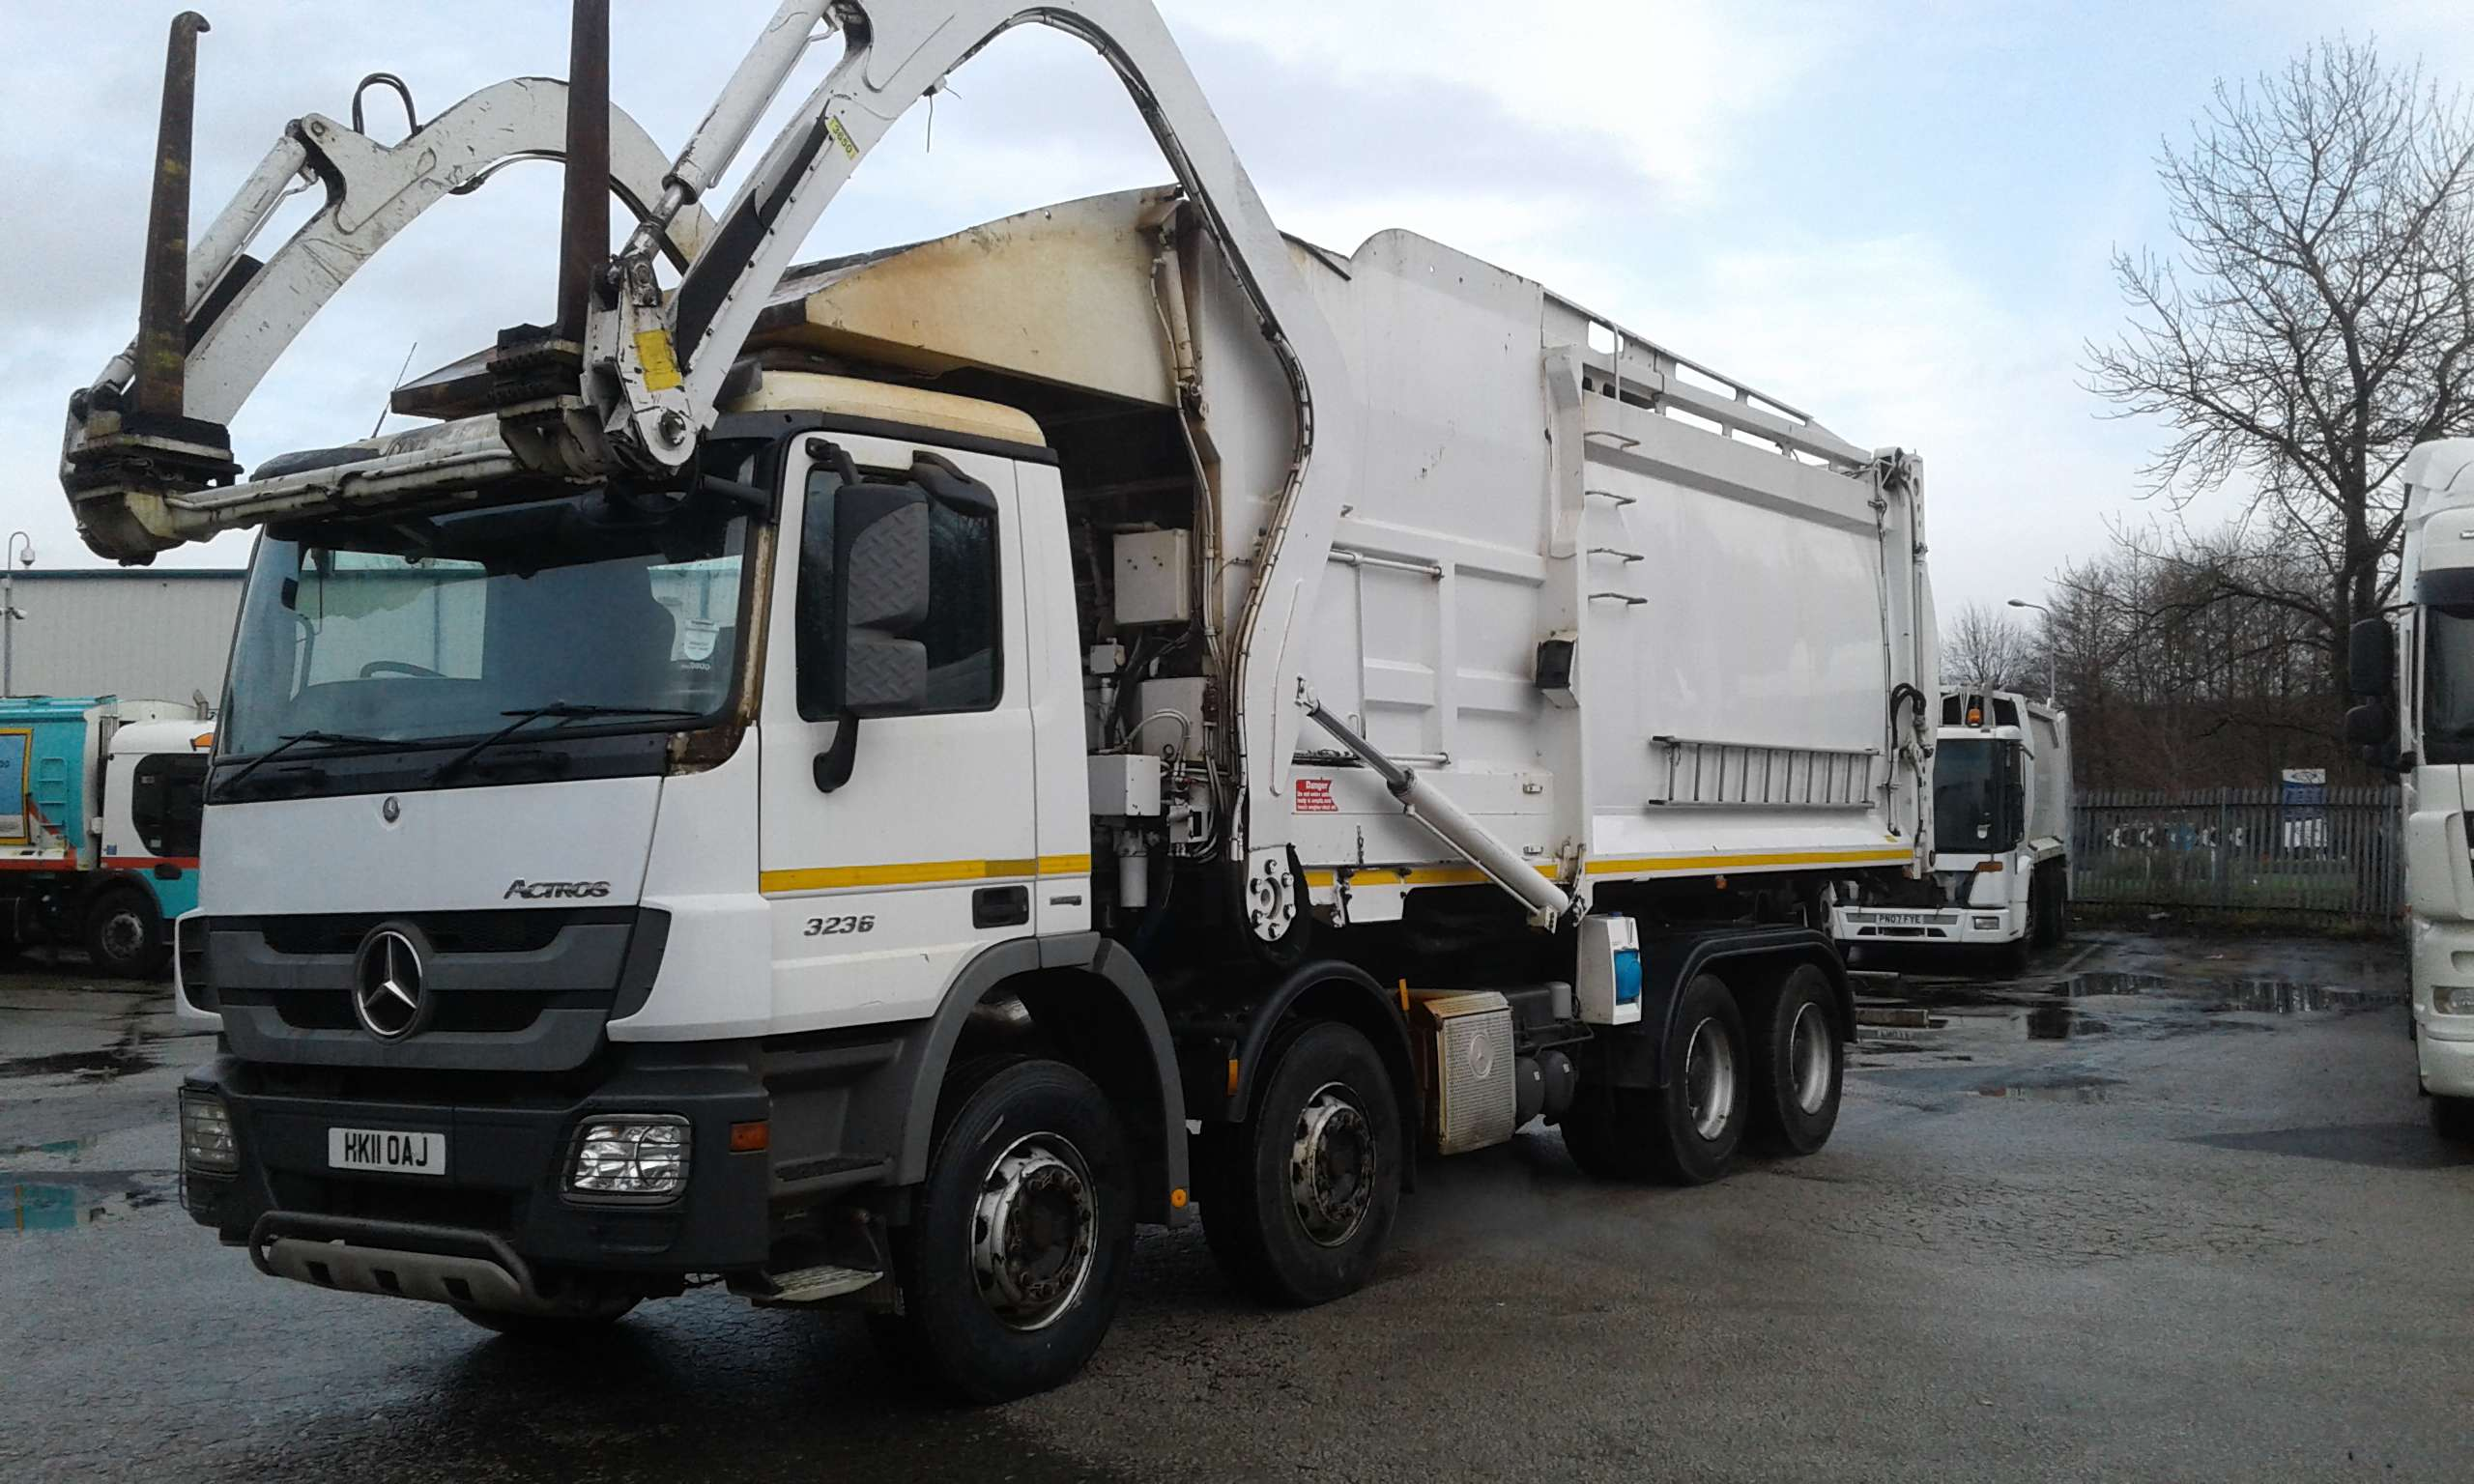 2011 Mercedes Actors 8x4 Front end loader for sale, Geesink-Norba body 2